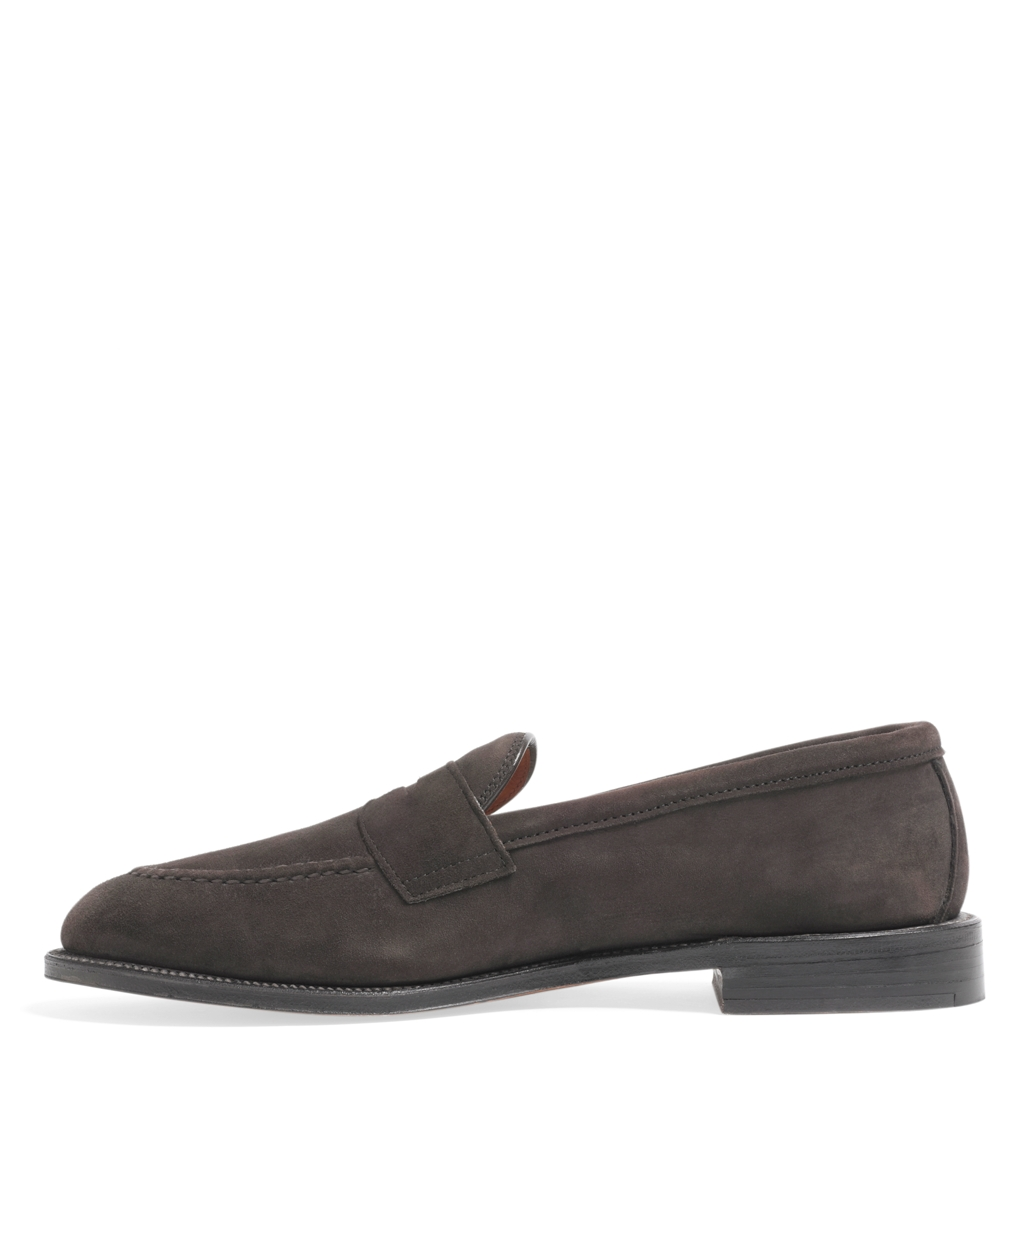 077be650024 Lyst - Brooks Brothers Hand Sewn Suede Penny Loafer in Brown for Men